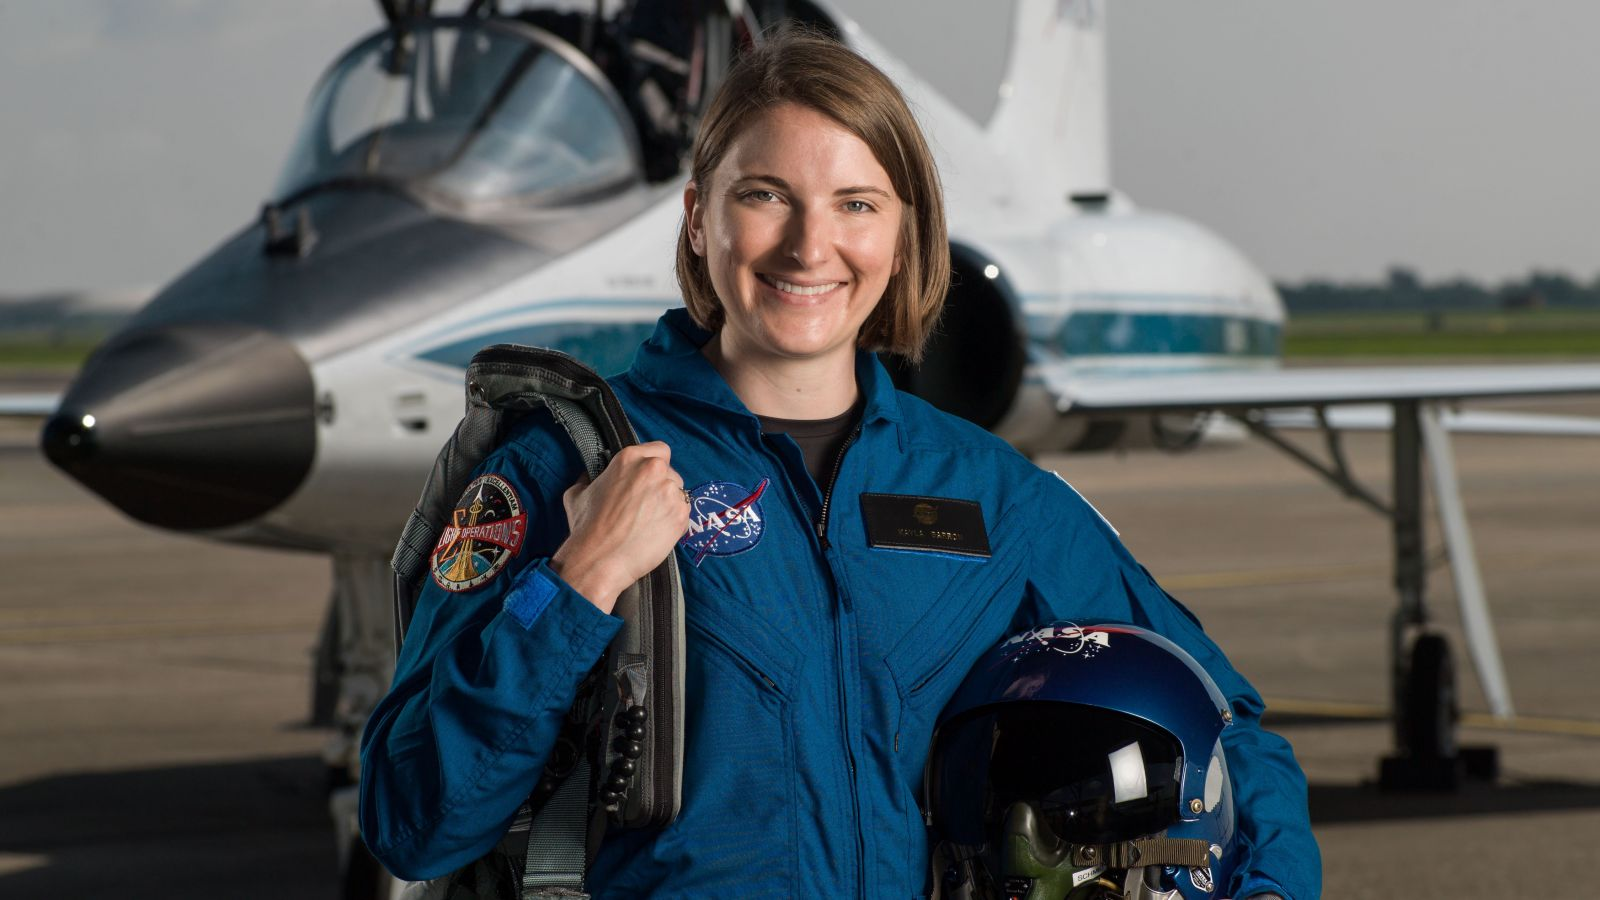 A photo of Kayla Barron when she was an astronaut candidate in 2017. Credit: NASA